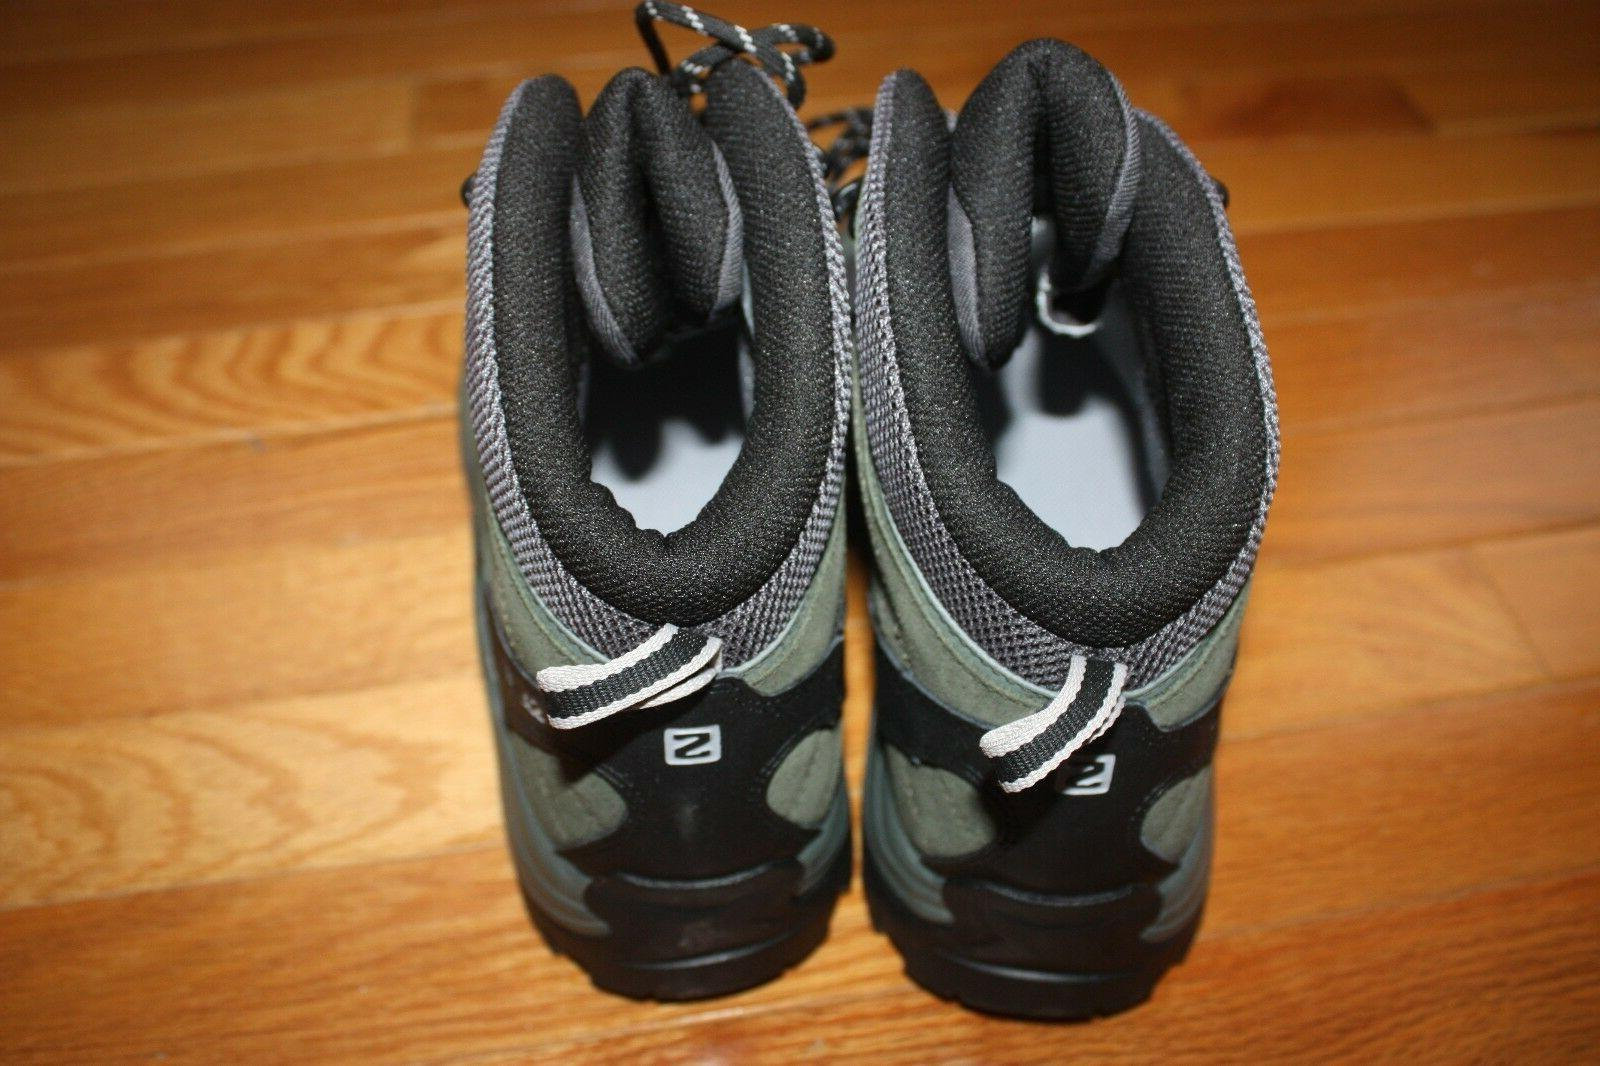 New In Men's Salomon Authentic LTR Backpacking Boots